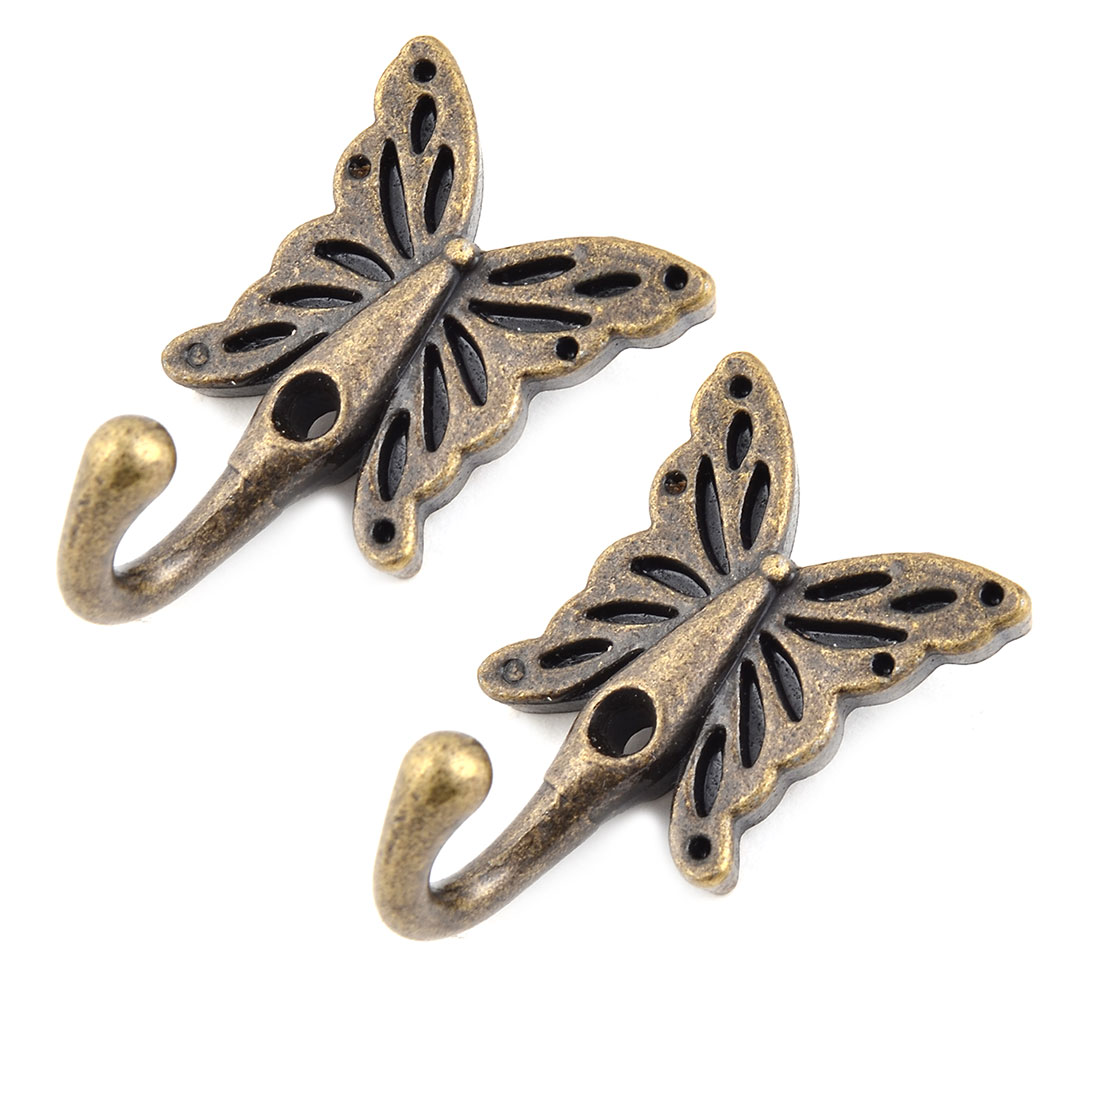 Home Metal Butterfly Vintage Style Wall Mounted Hanger Hook Bronze Tone 2 Pcs